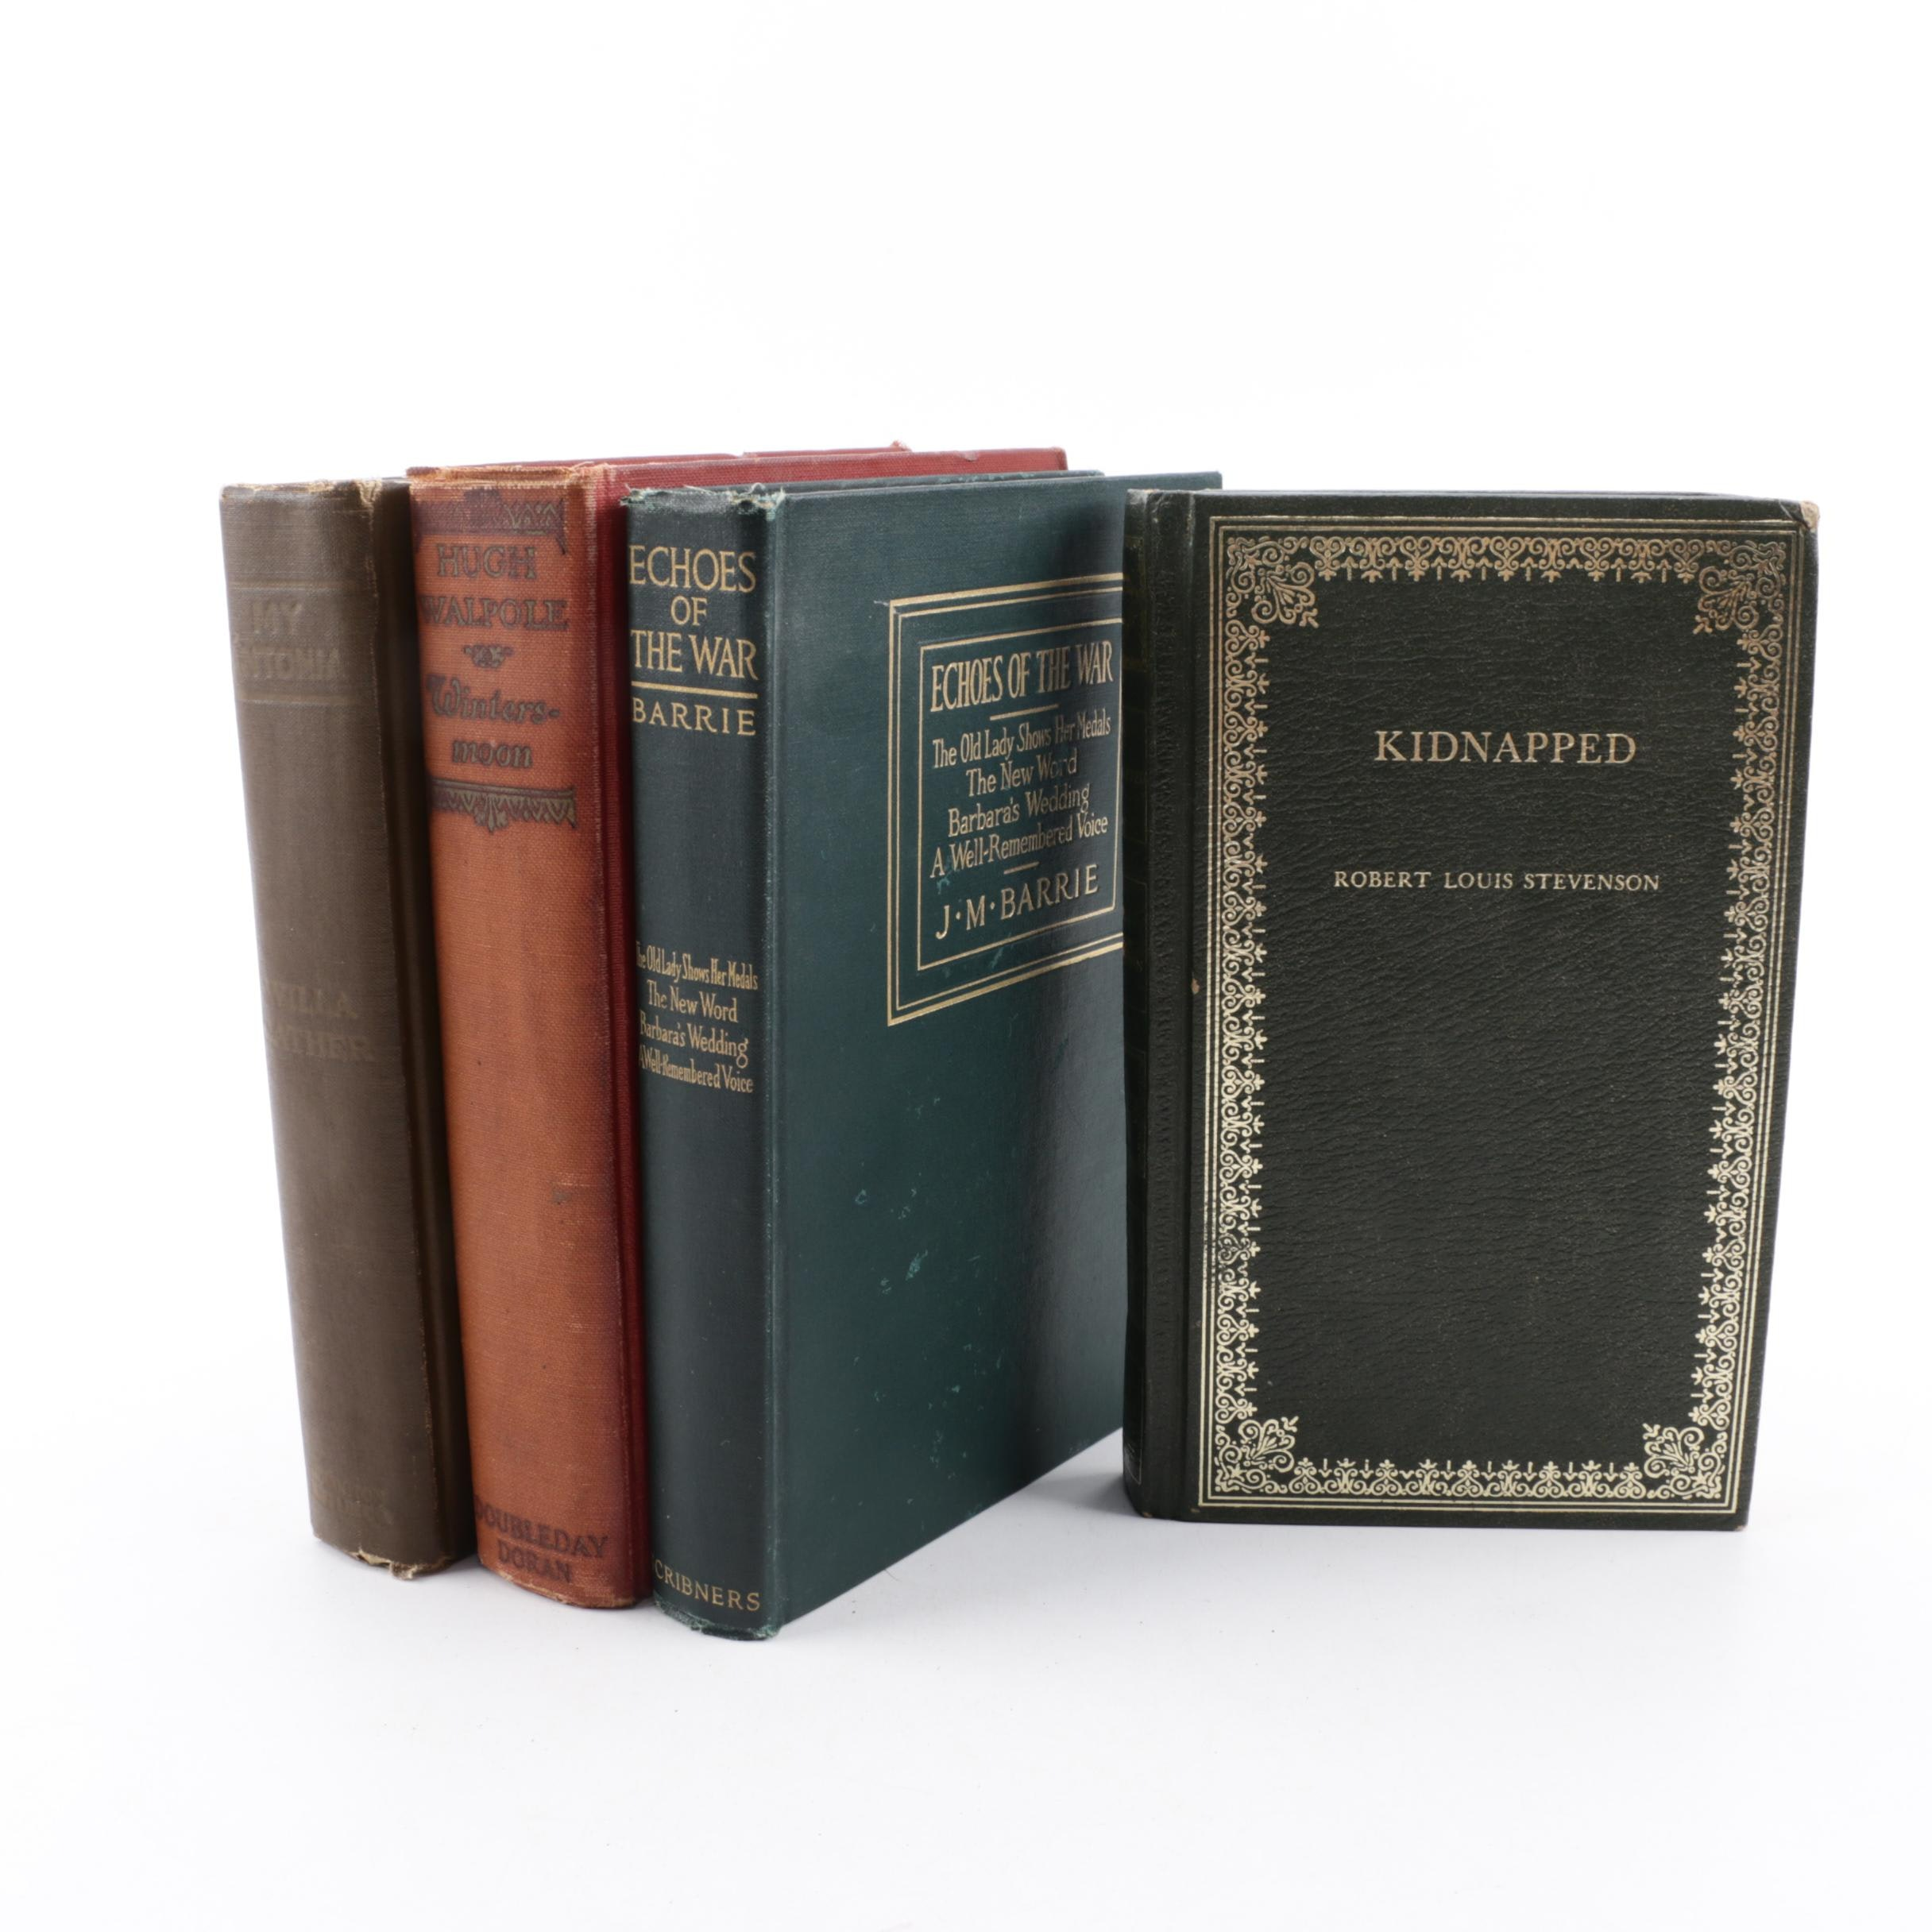 """1918 First American Edition """"Echoes of War"""" by J.M. Barrie & Other Classics"""